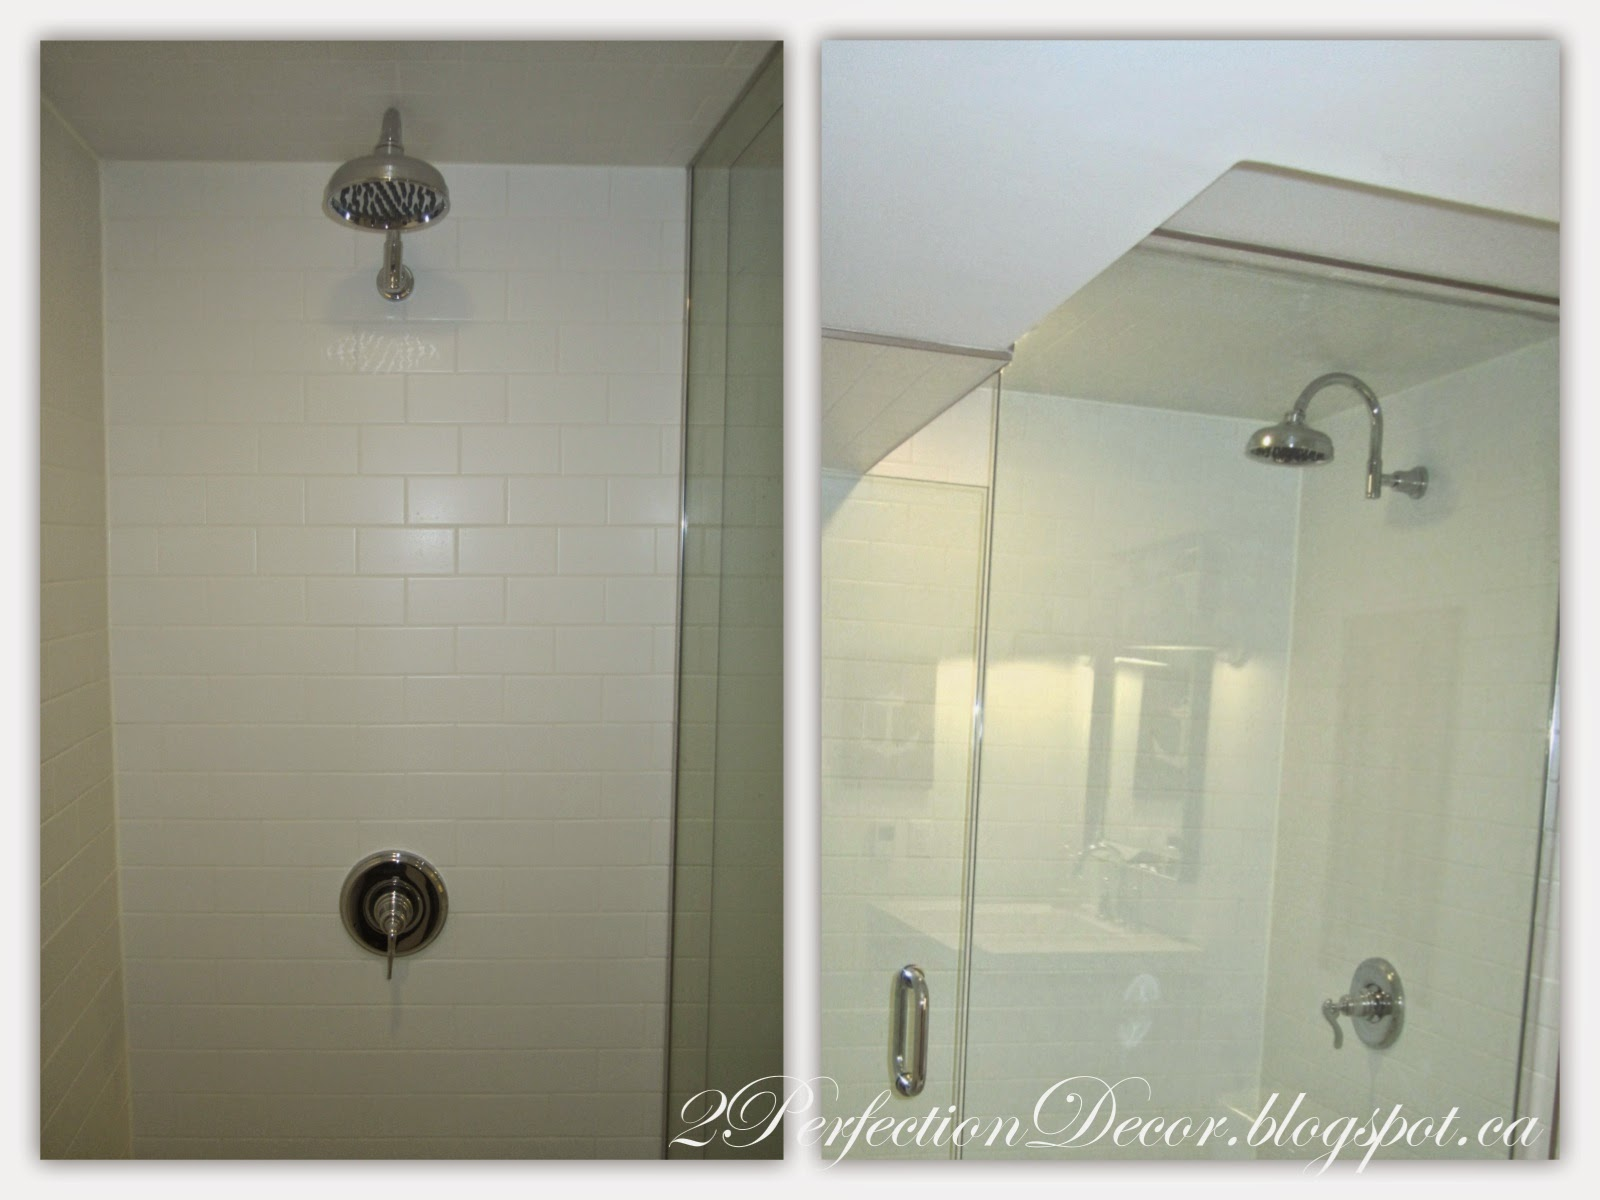 2perfection Decor Basement Coastal Bathroom Reveal: 2Perfection Decor: Basement Coastal Bathroom Reveal